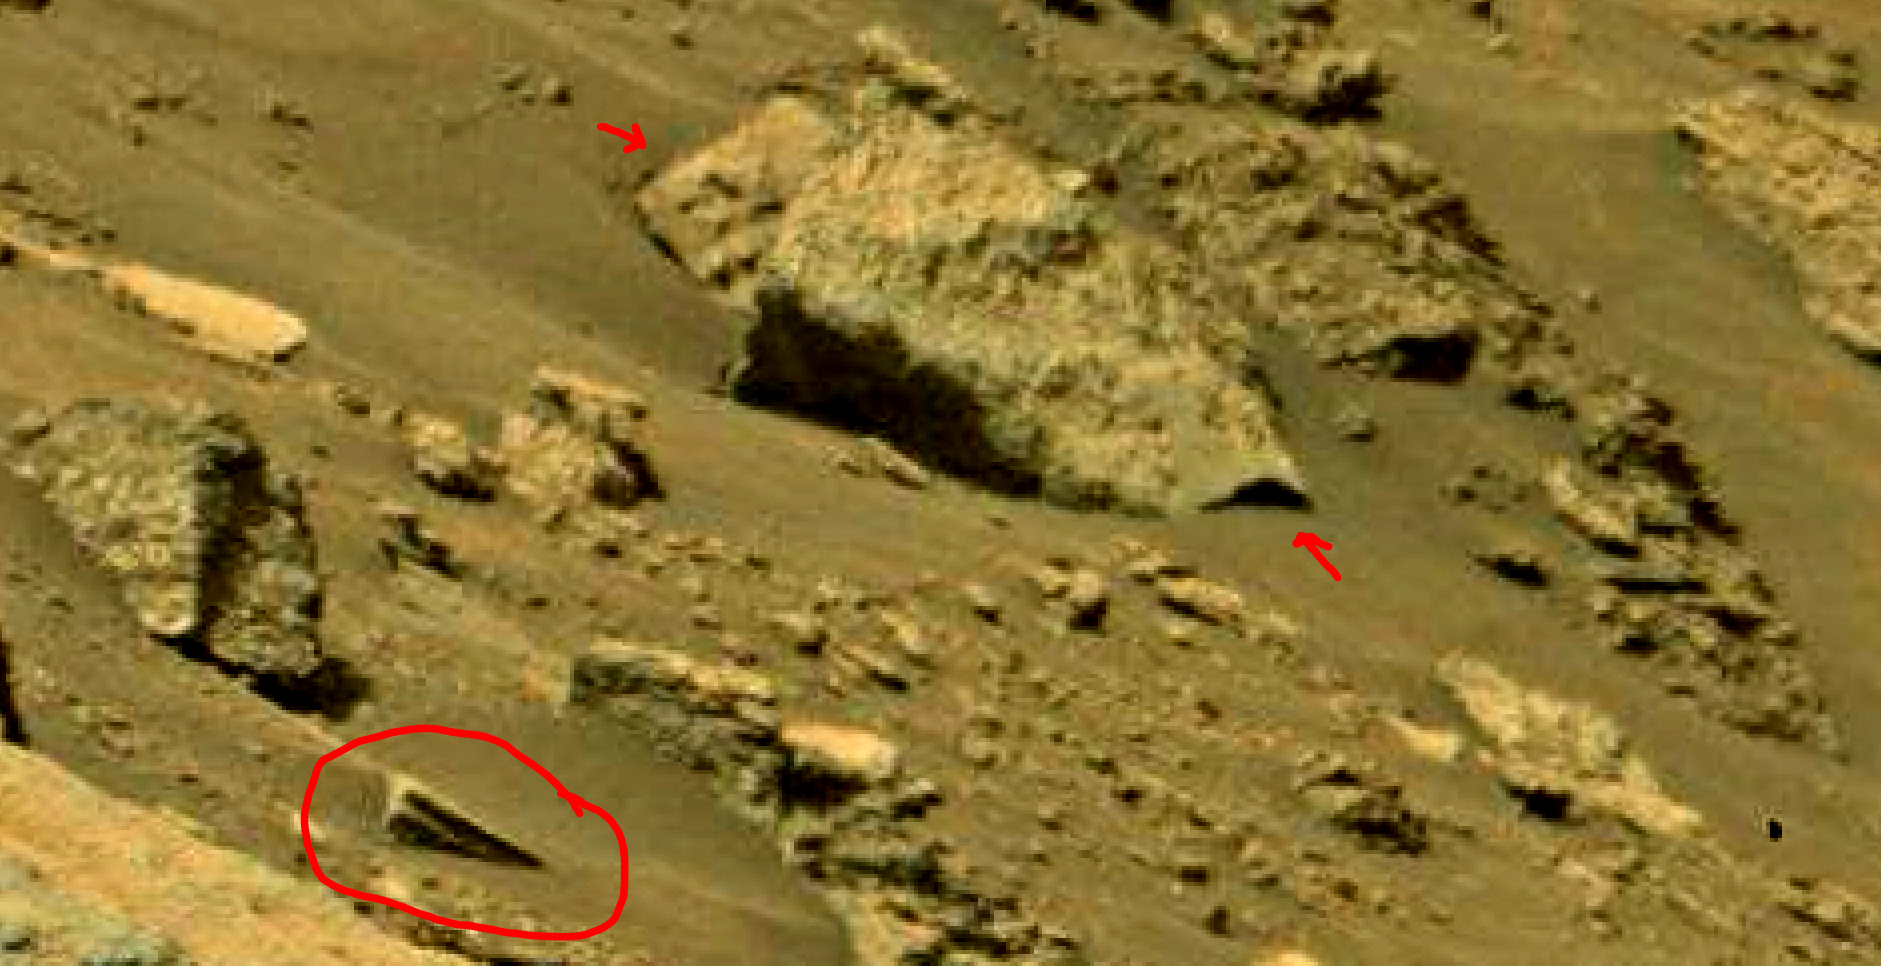 mars-sol-1467-anomaly-artifacts-10-was-life-on-mars